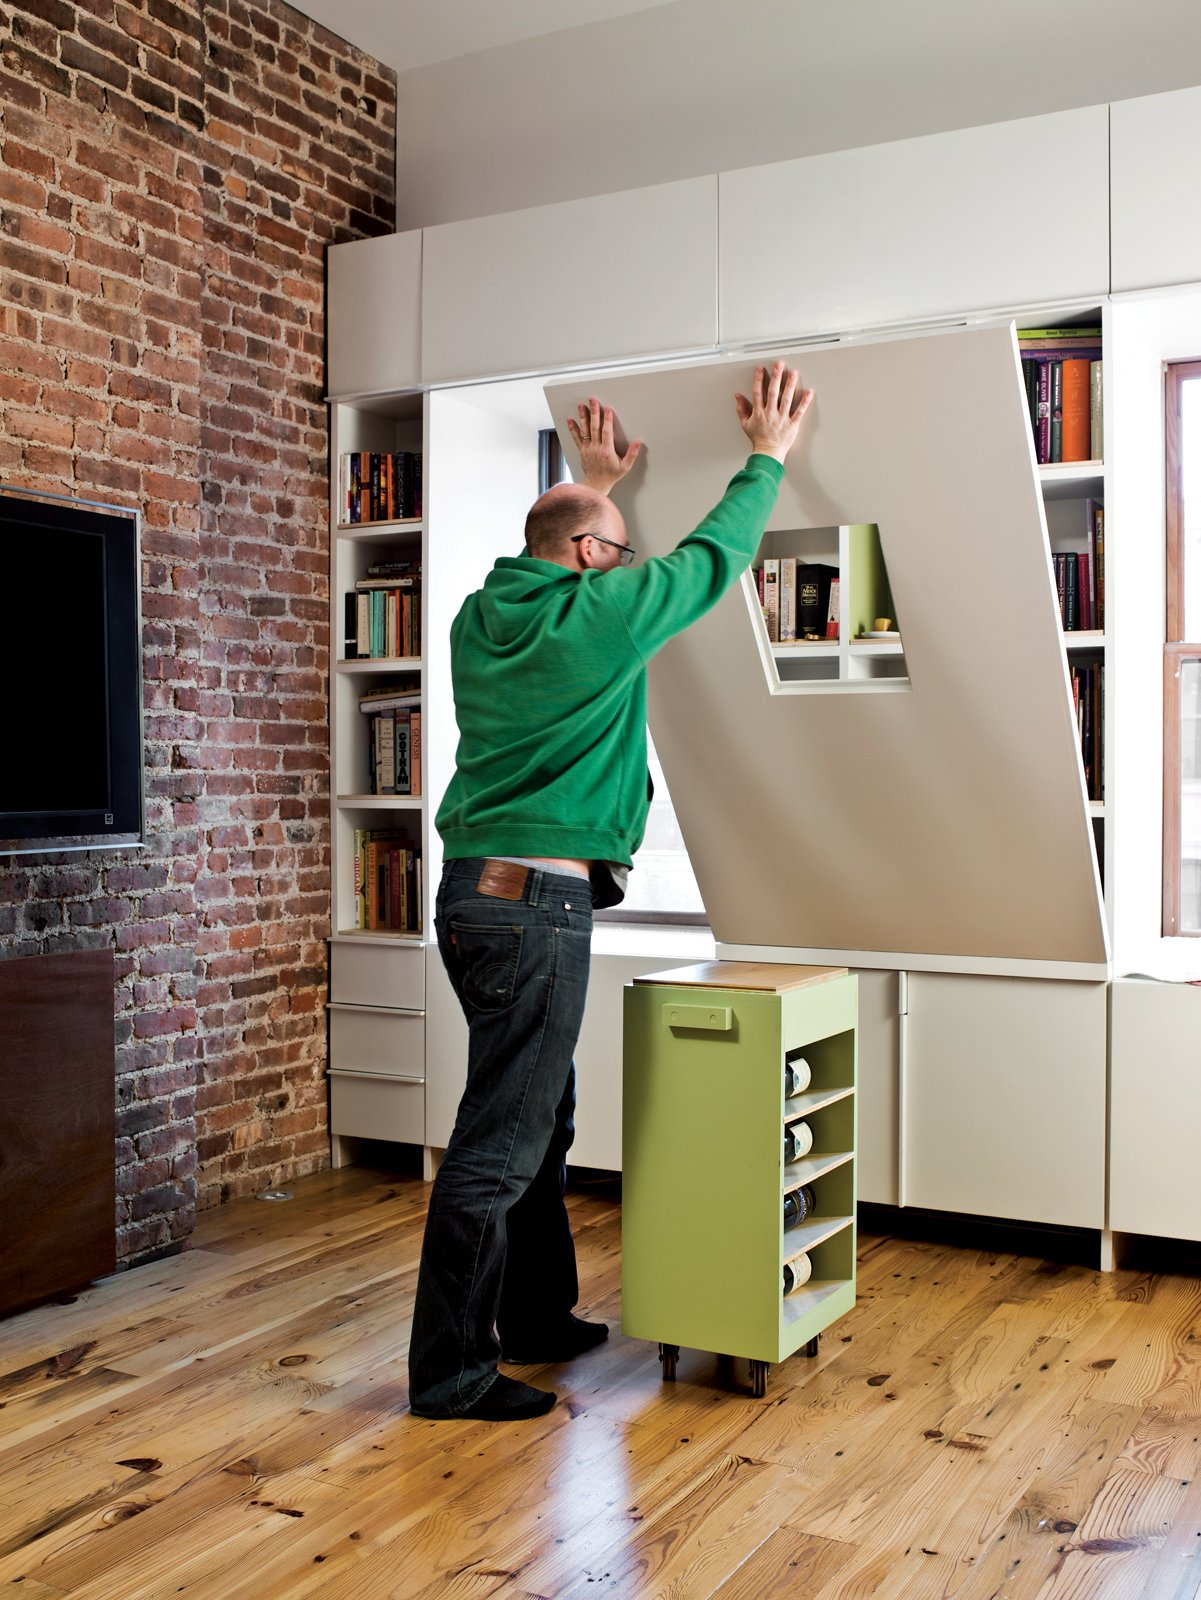 The table's base, which itself is an additional storage container, rolls easily into place to support the surface.  Tiny Apartments in New York City by Allie Weiss from Storage-Smart Renovation in New York City